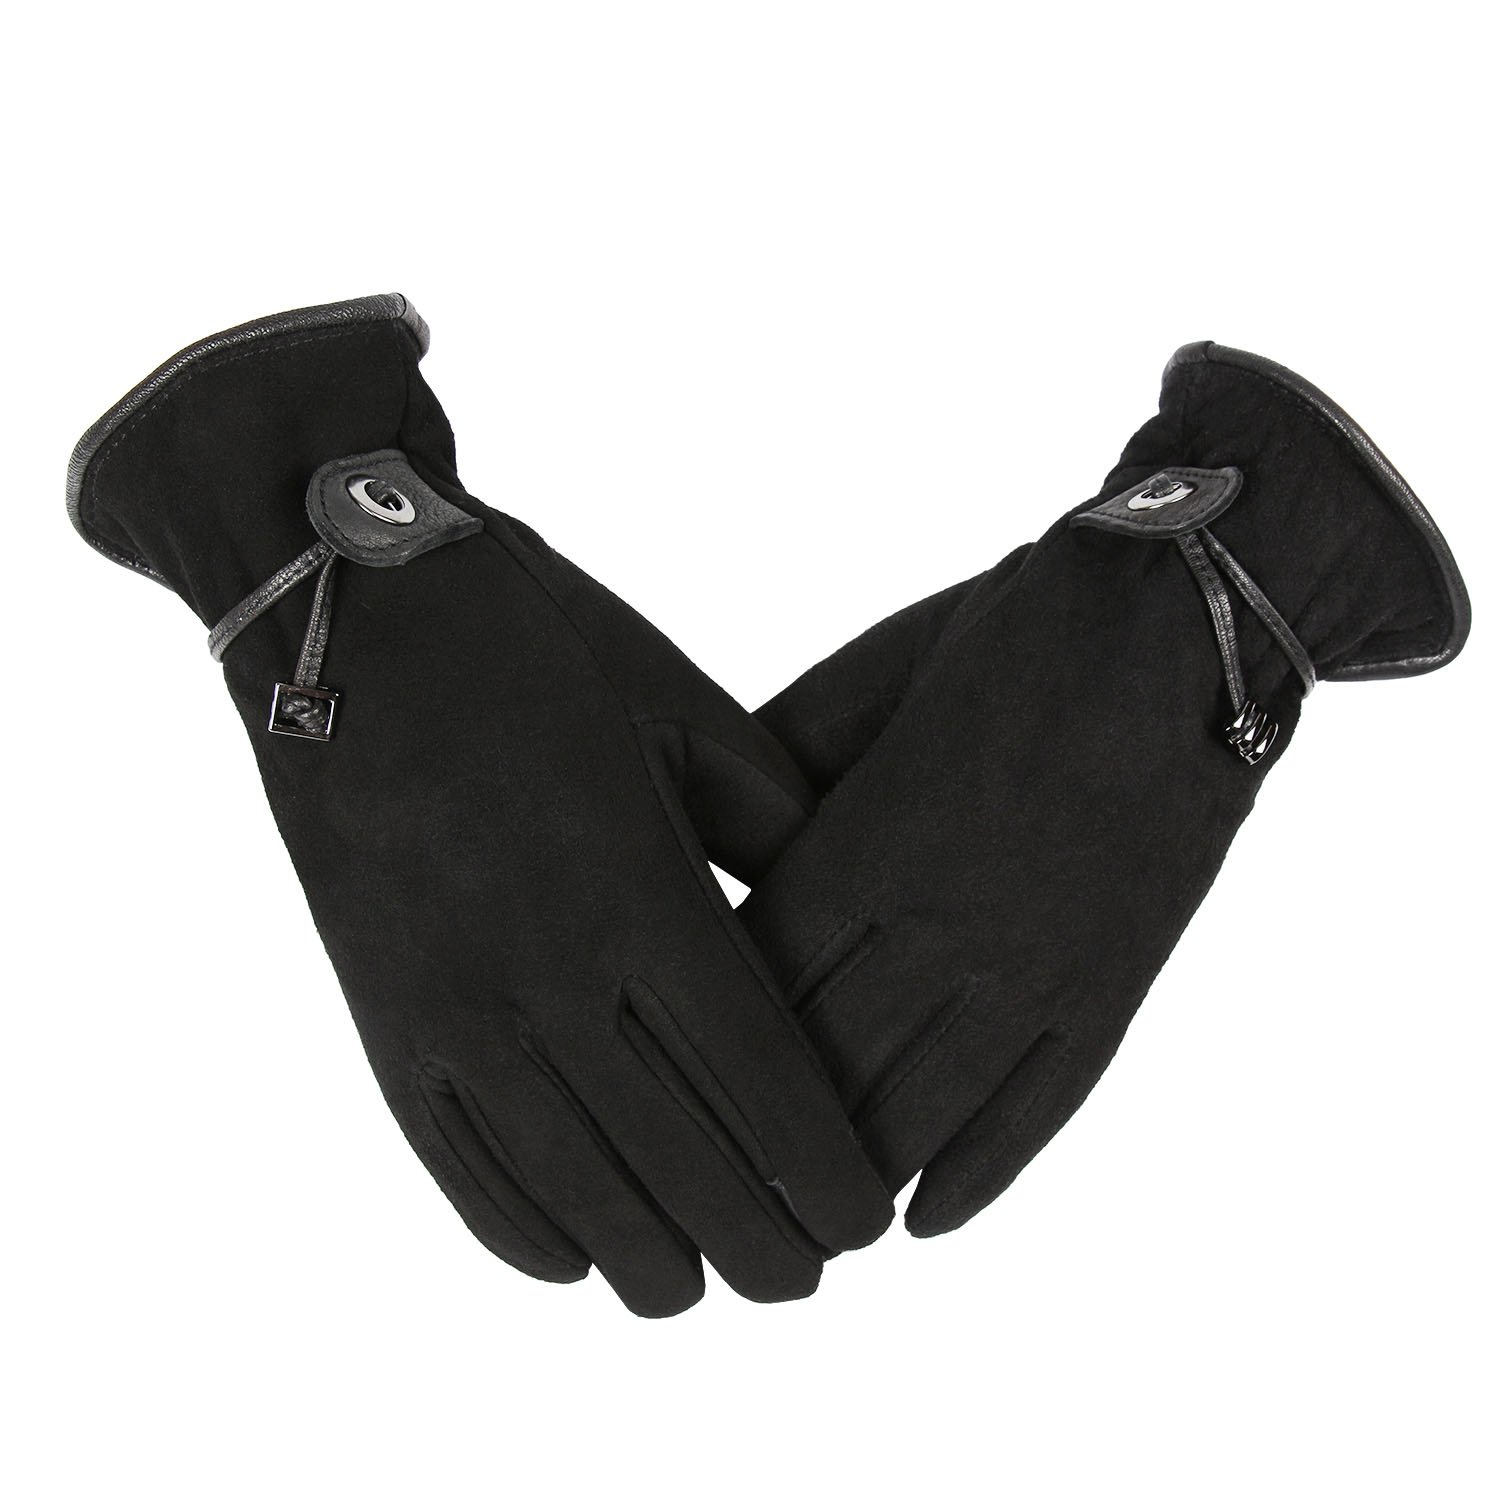 OZERO Winter Gloves Women/Girls, Deerskin Suede Leather Motorcycle Cycling Bike Glove - Sensitive Touch Screen Fingertips Silky Velour Fleece Lining - Warm Hand in Cold Weather (Black,Medium)